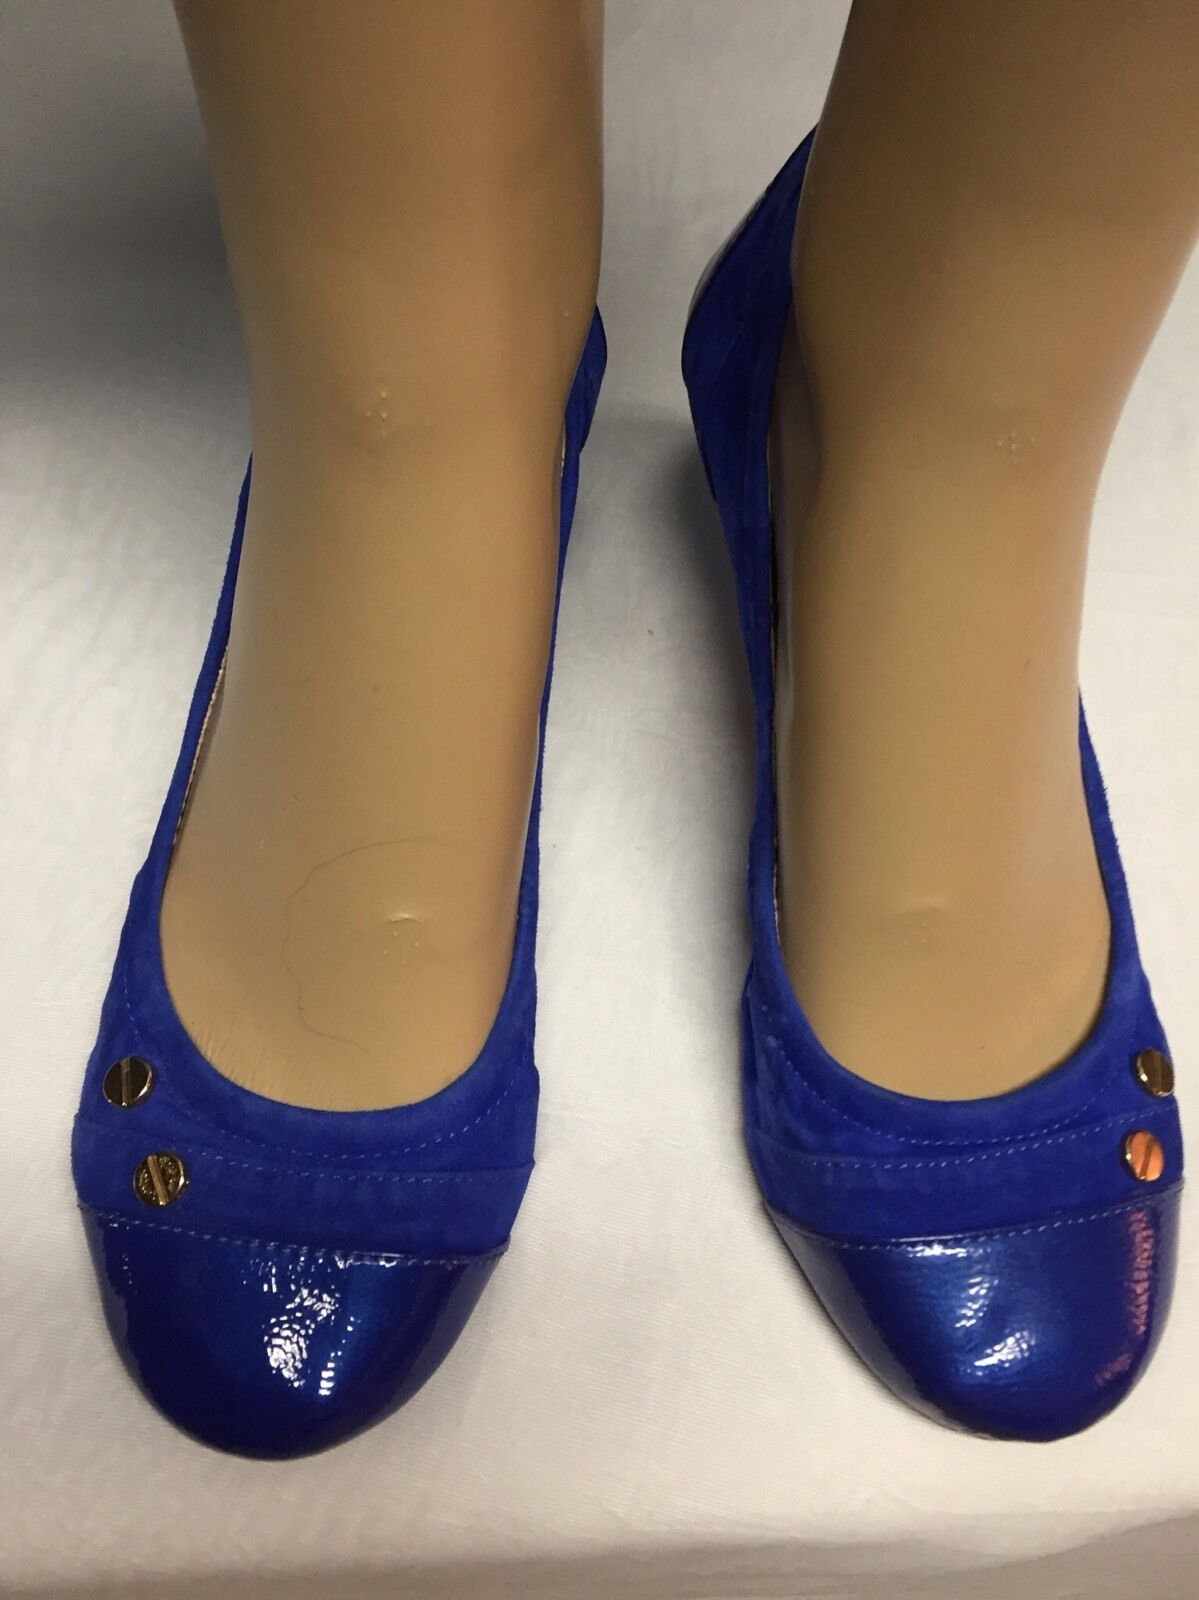 VINCE CAMUTO COBALT blueE SUEDE BALLET FLAT WITH gold EMBELLISHMENT SZ 6 36